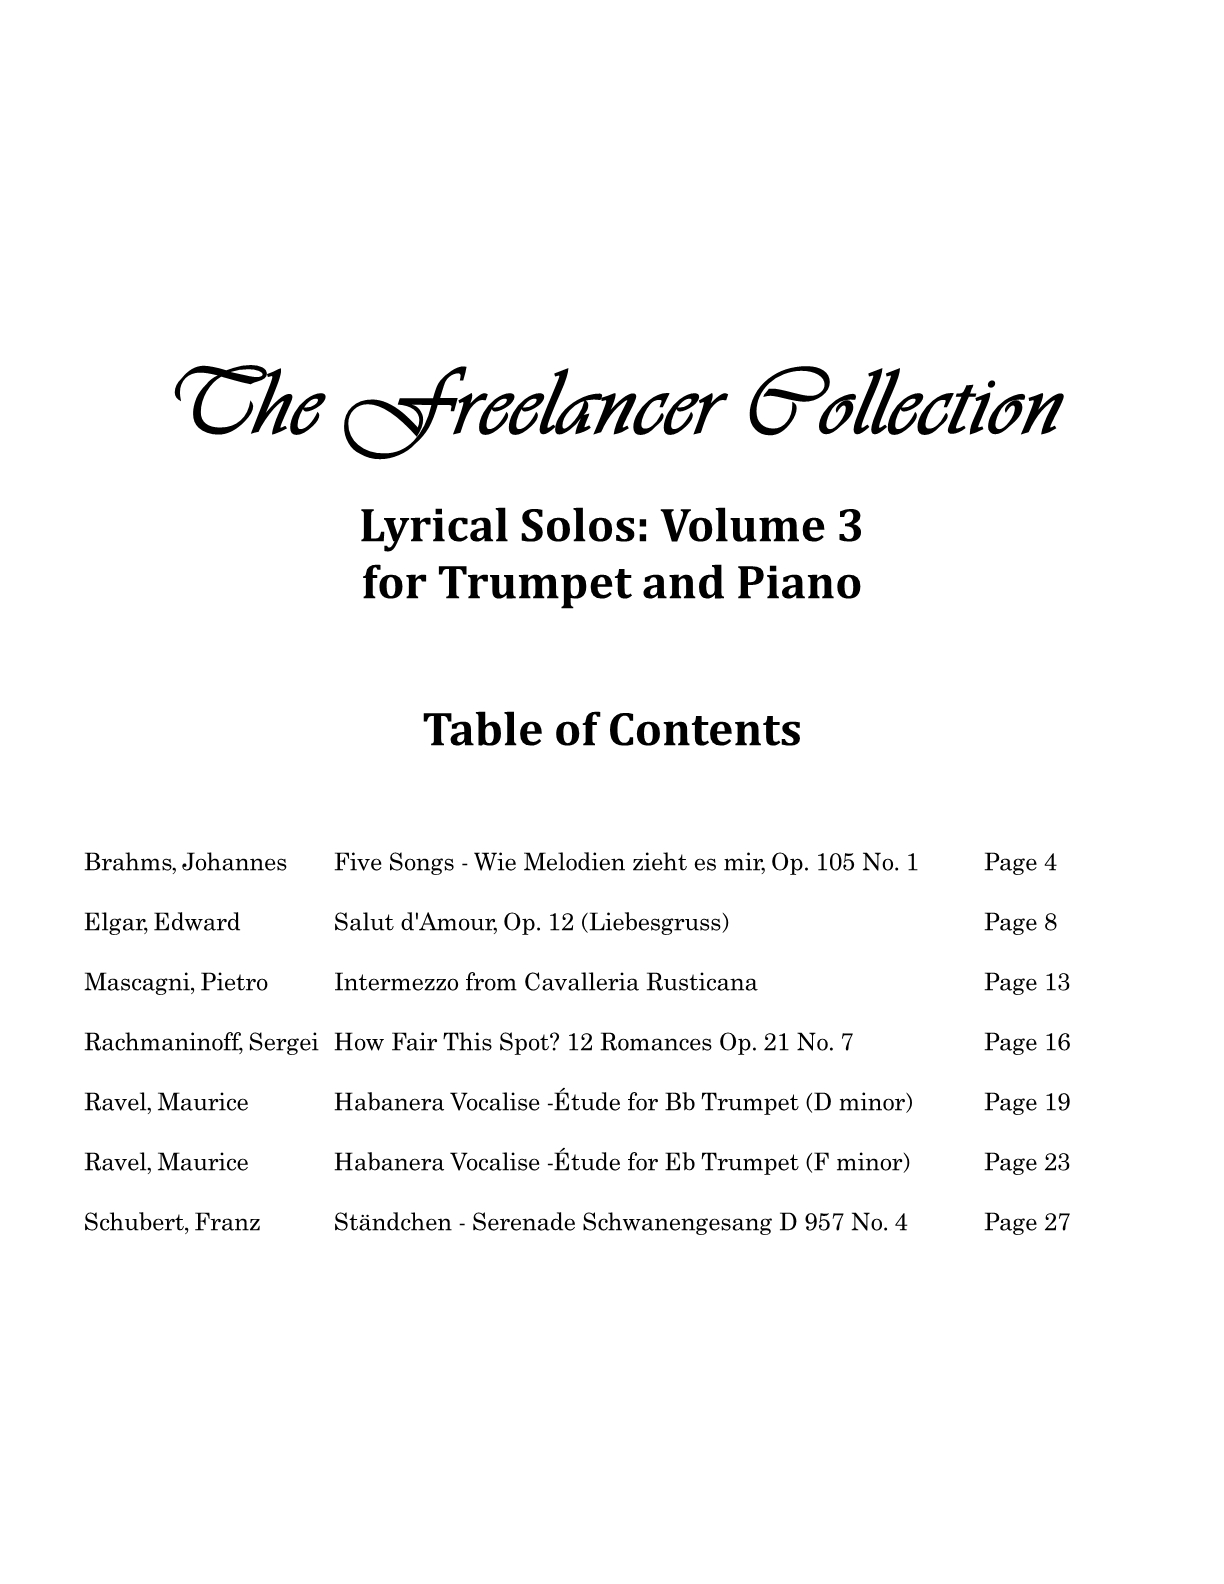 Hepler - Freelancer Collection Lyrical Solos Vol 3 (Trp & Piano)